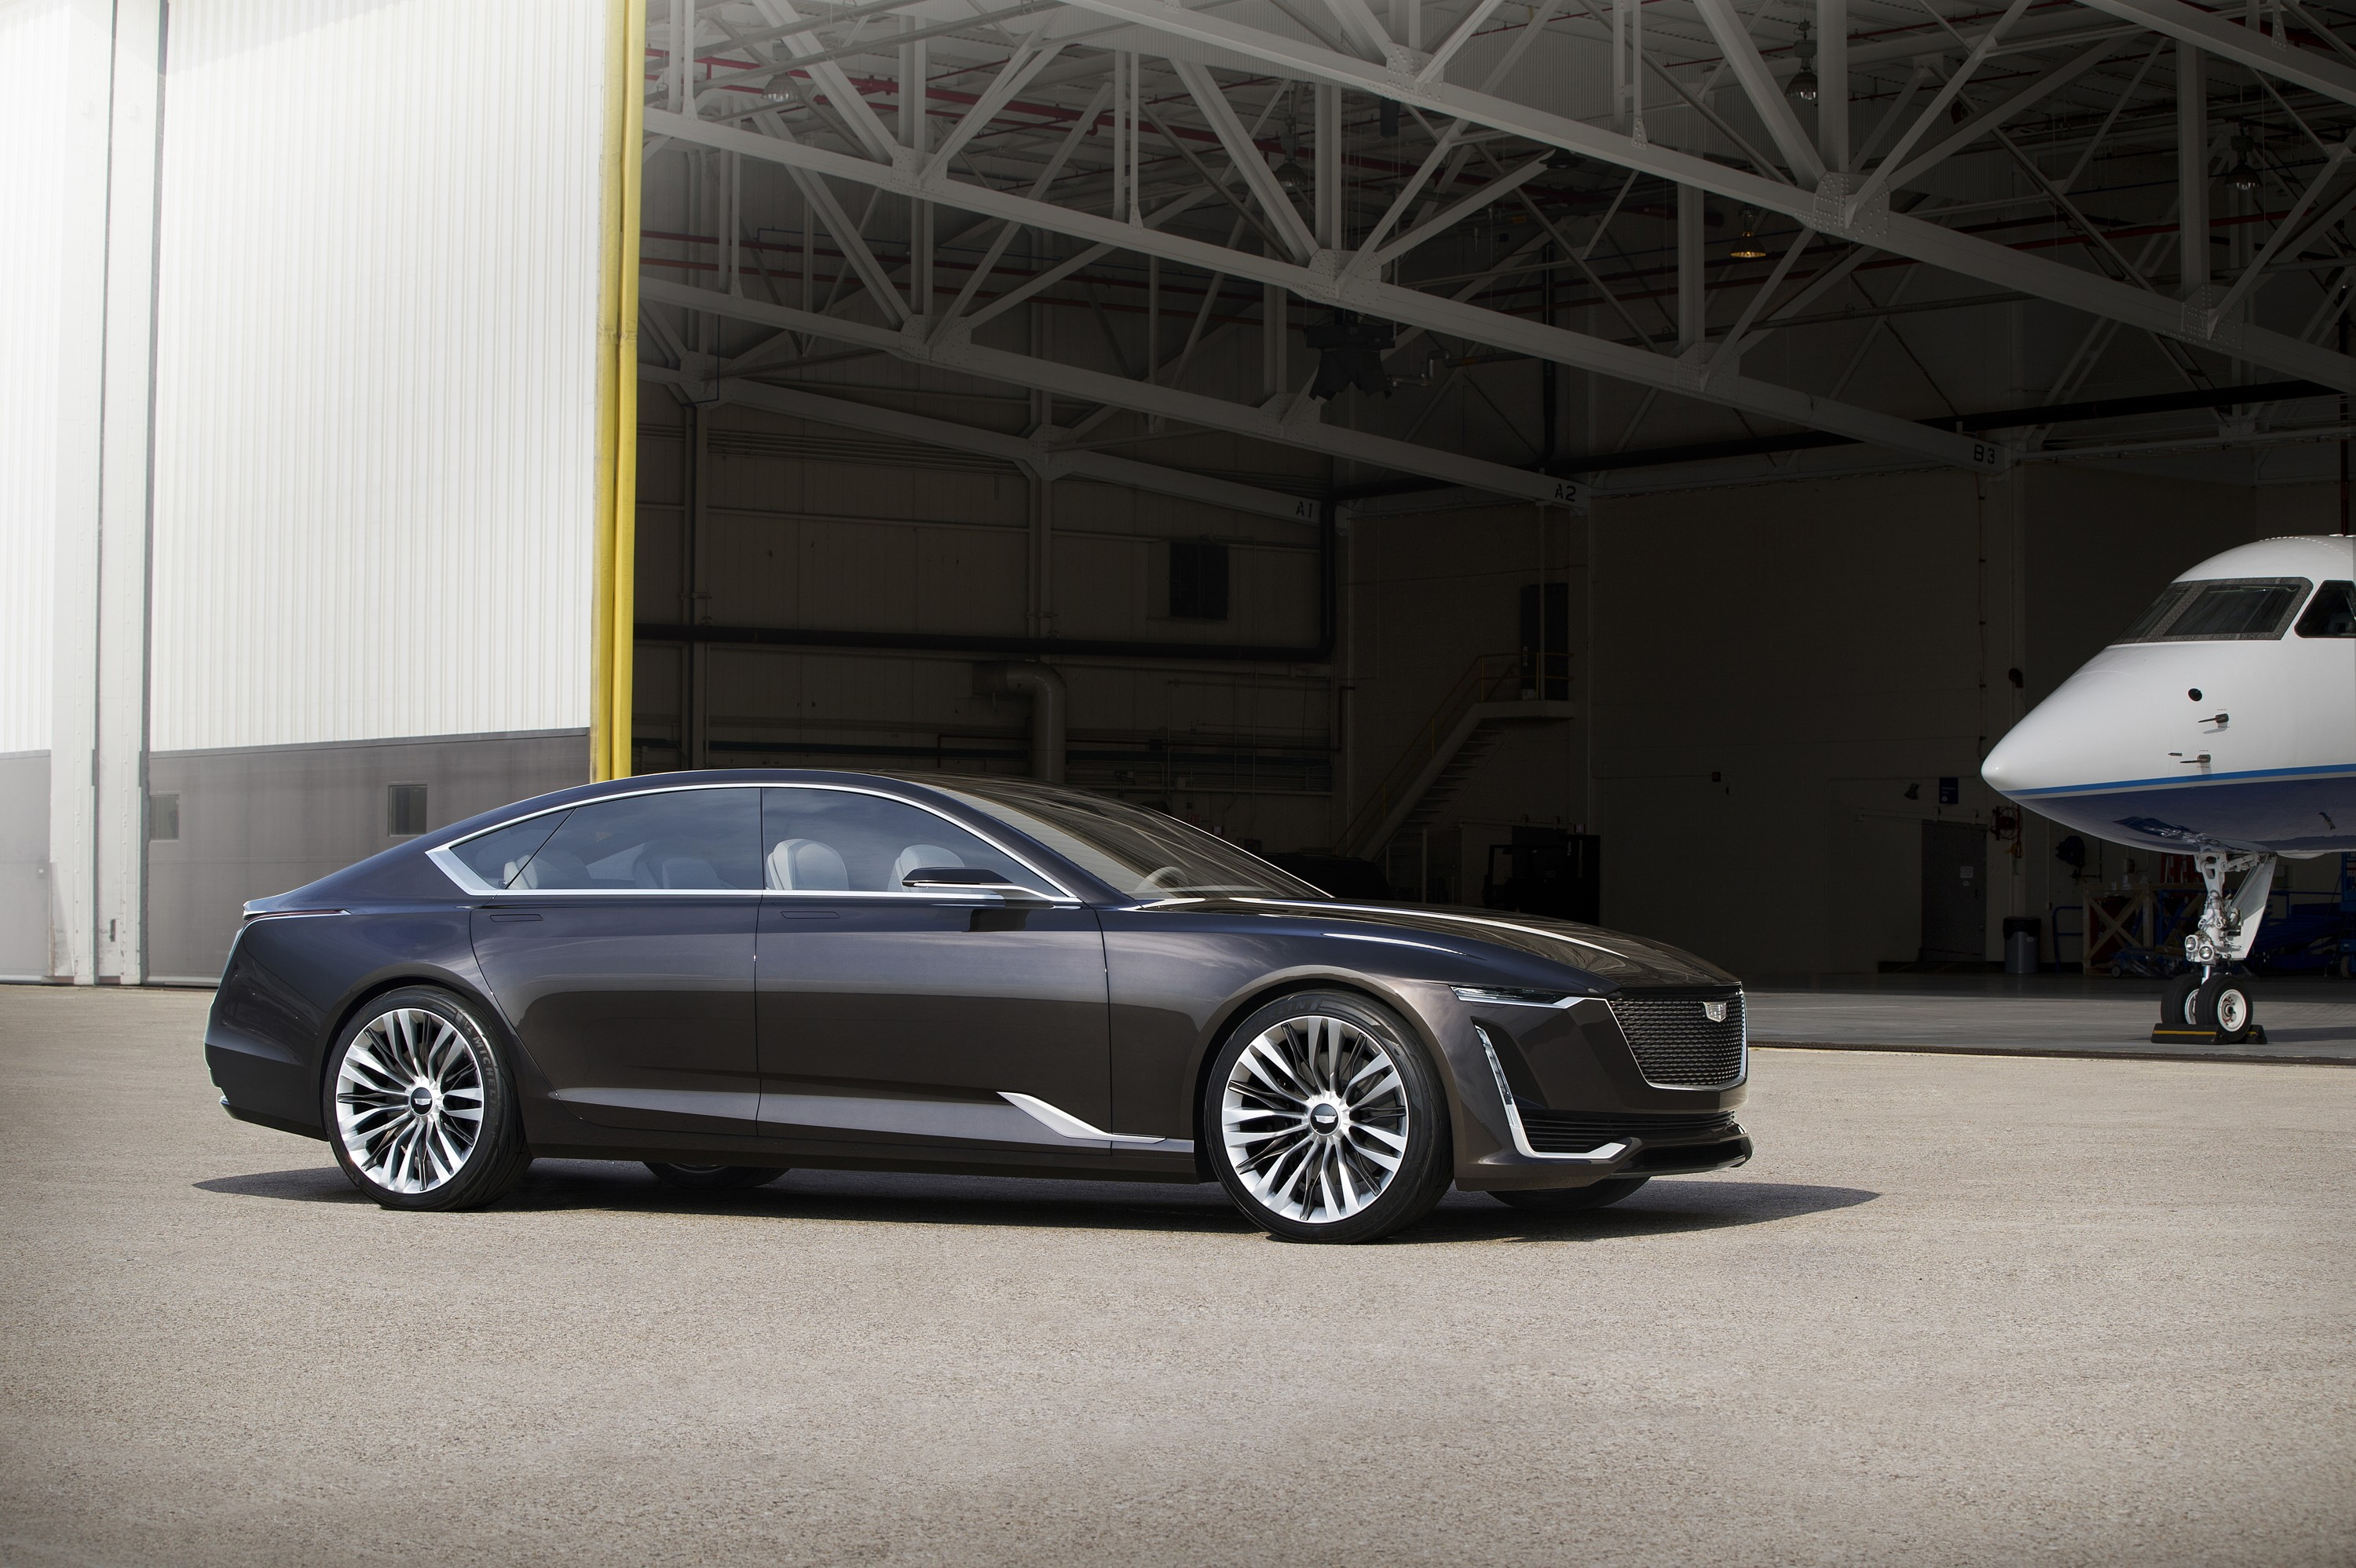 89 The Best 2020 Cadillac ELR Images